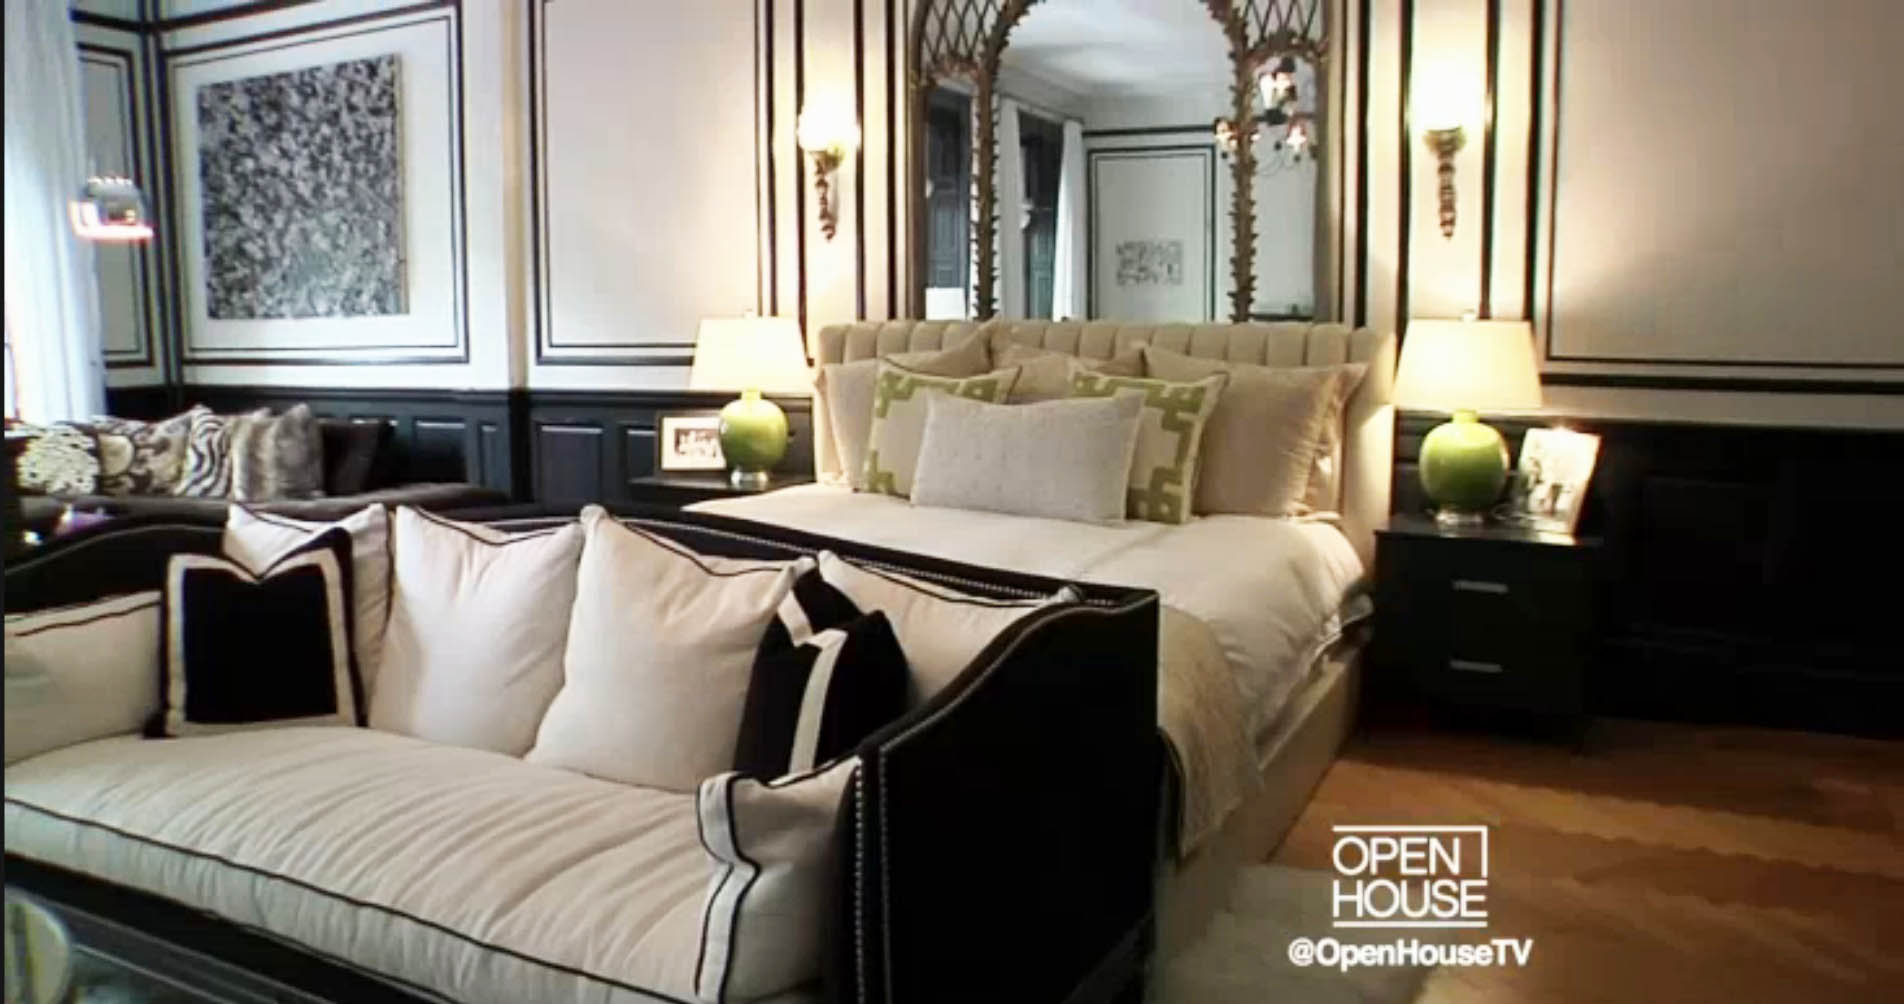 New York City Bedroom Decor Real Housewives Of New York City A Look At The Homes Of Luann De